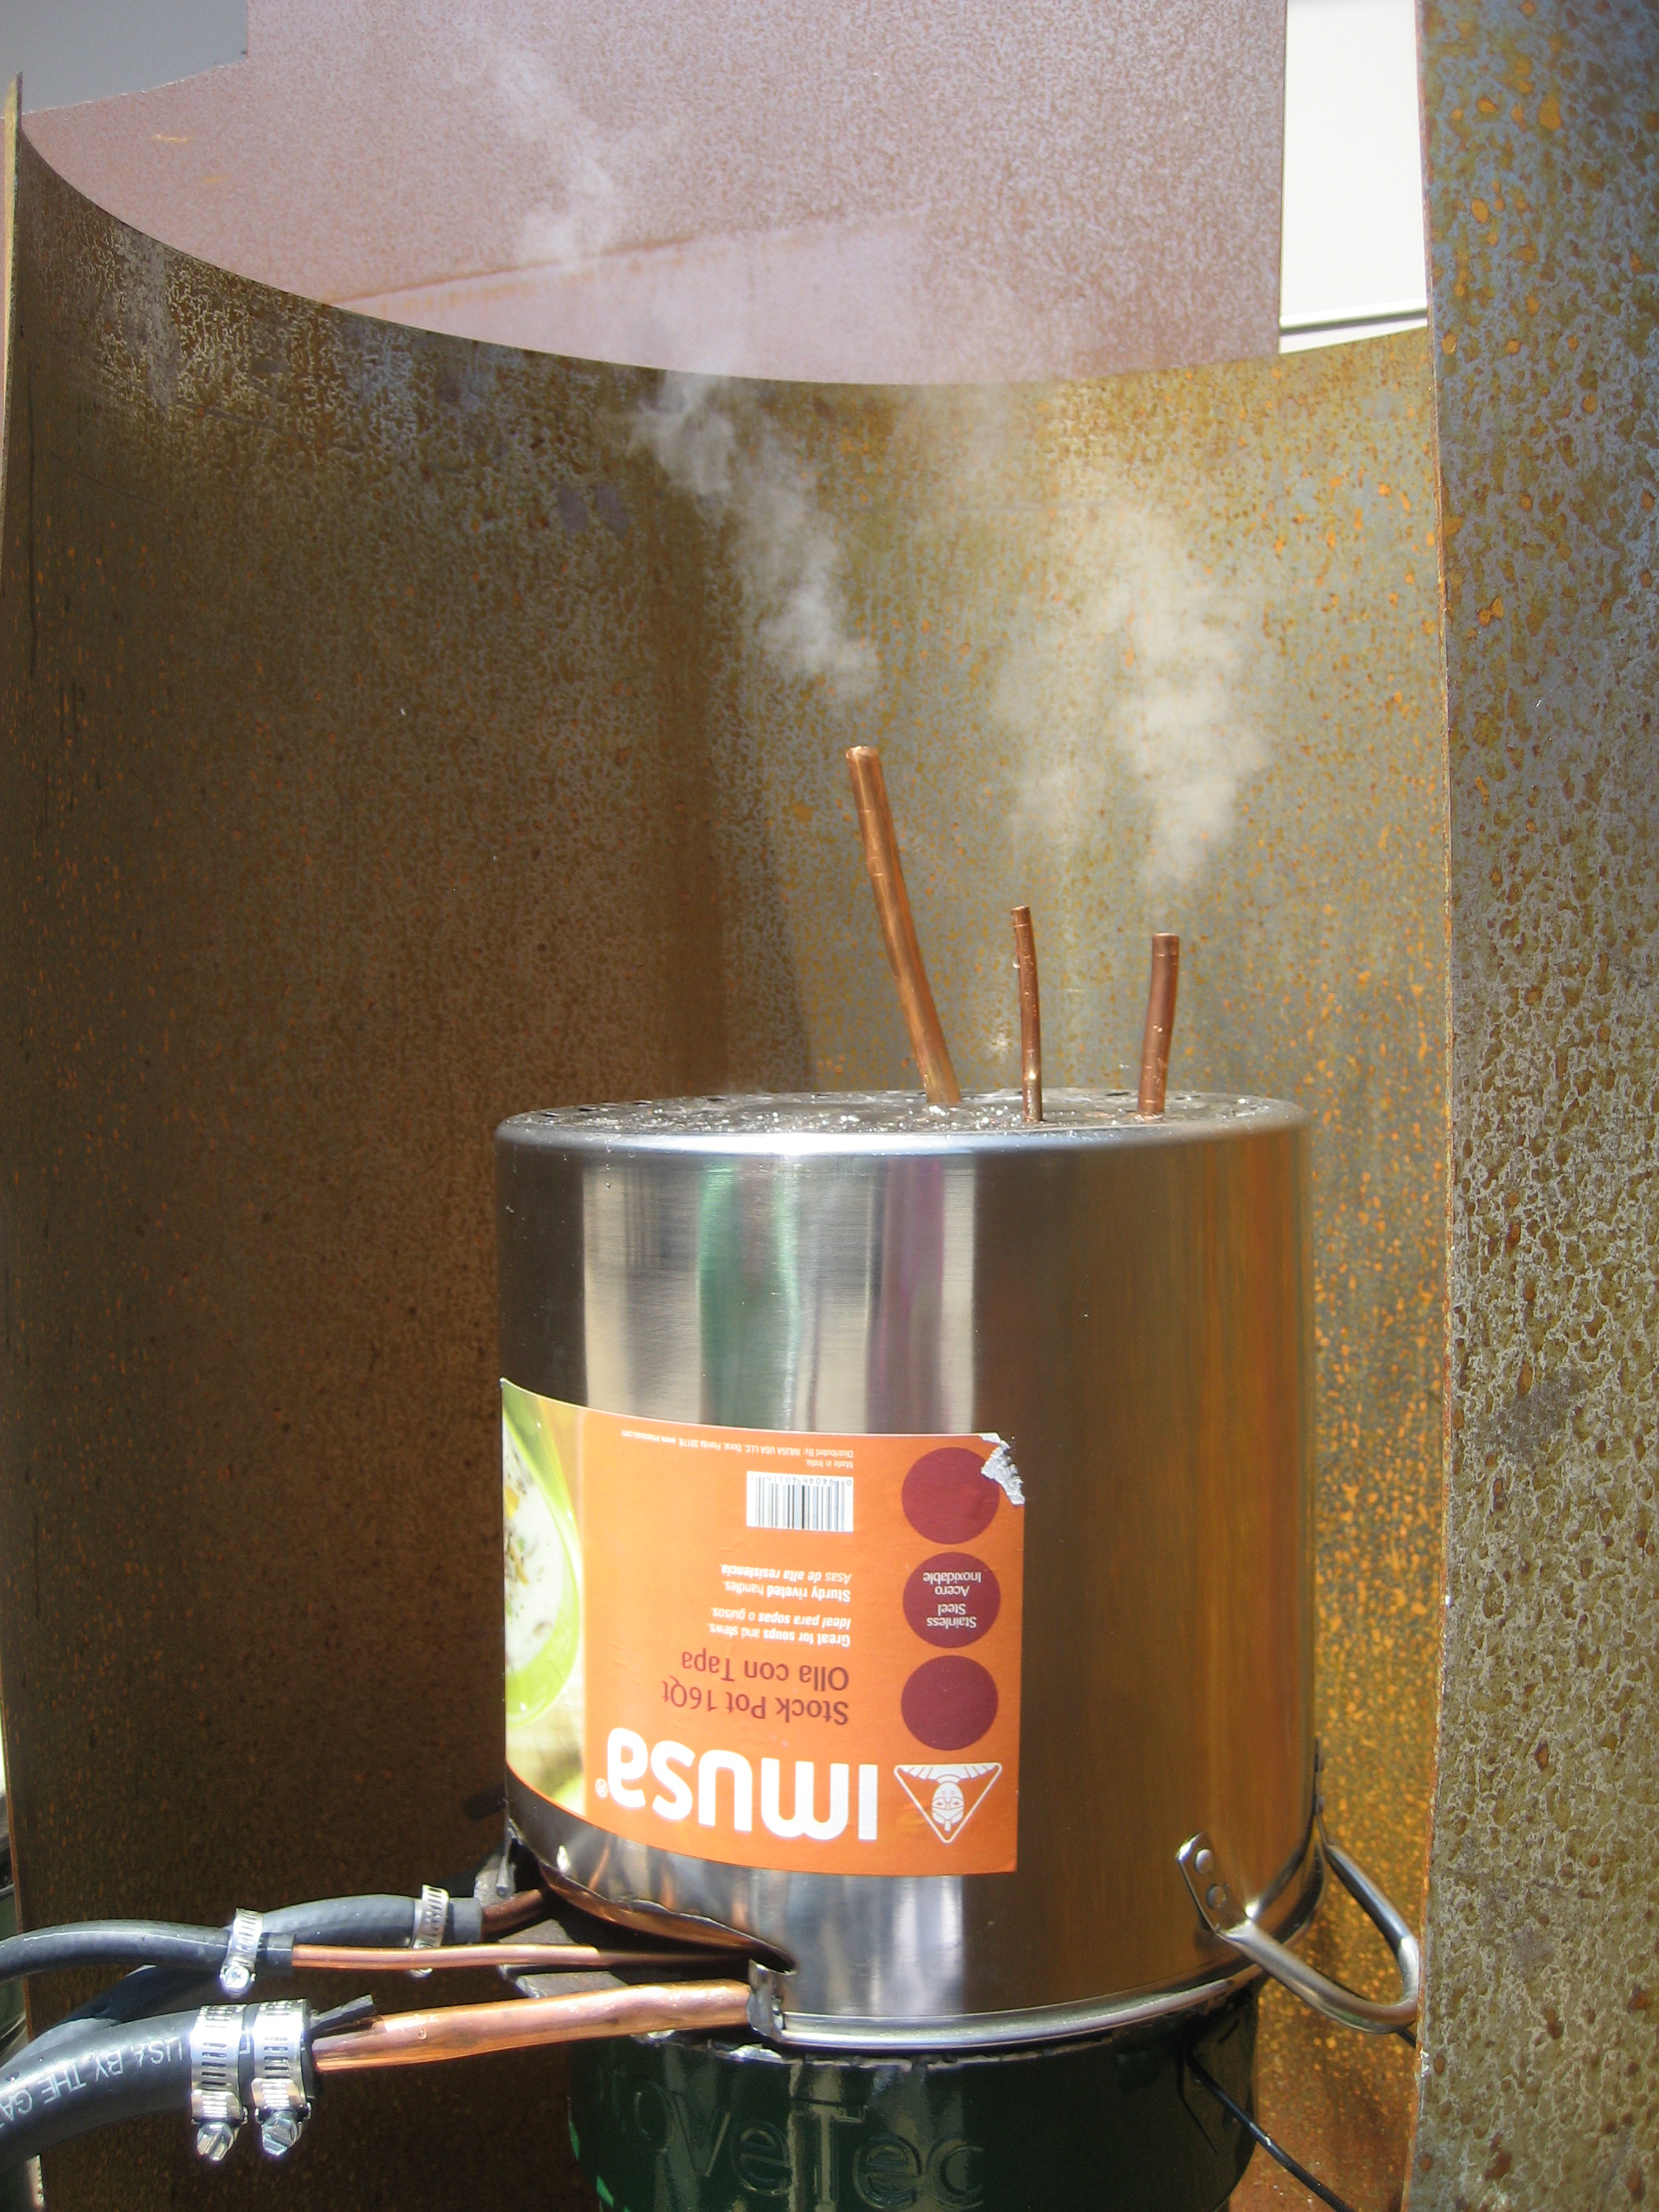 The Easy Steam Machine Boiler System for Distillation Units